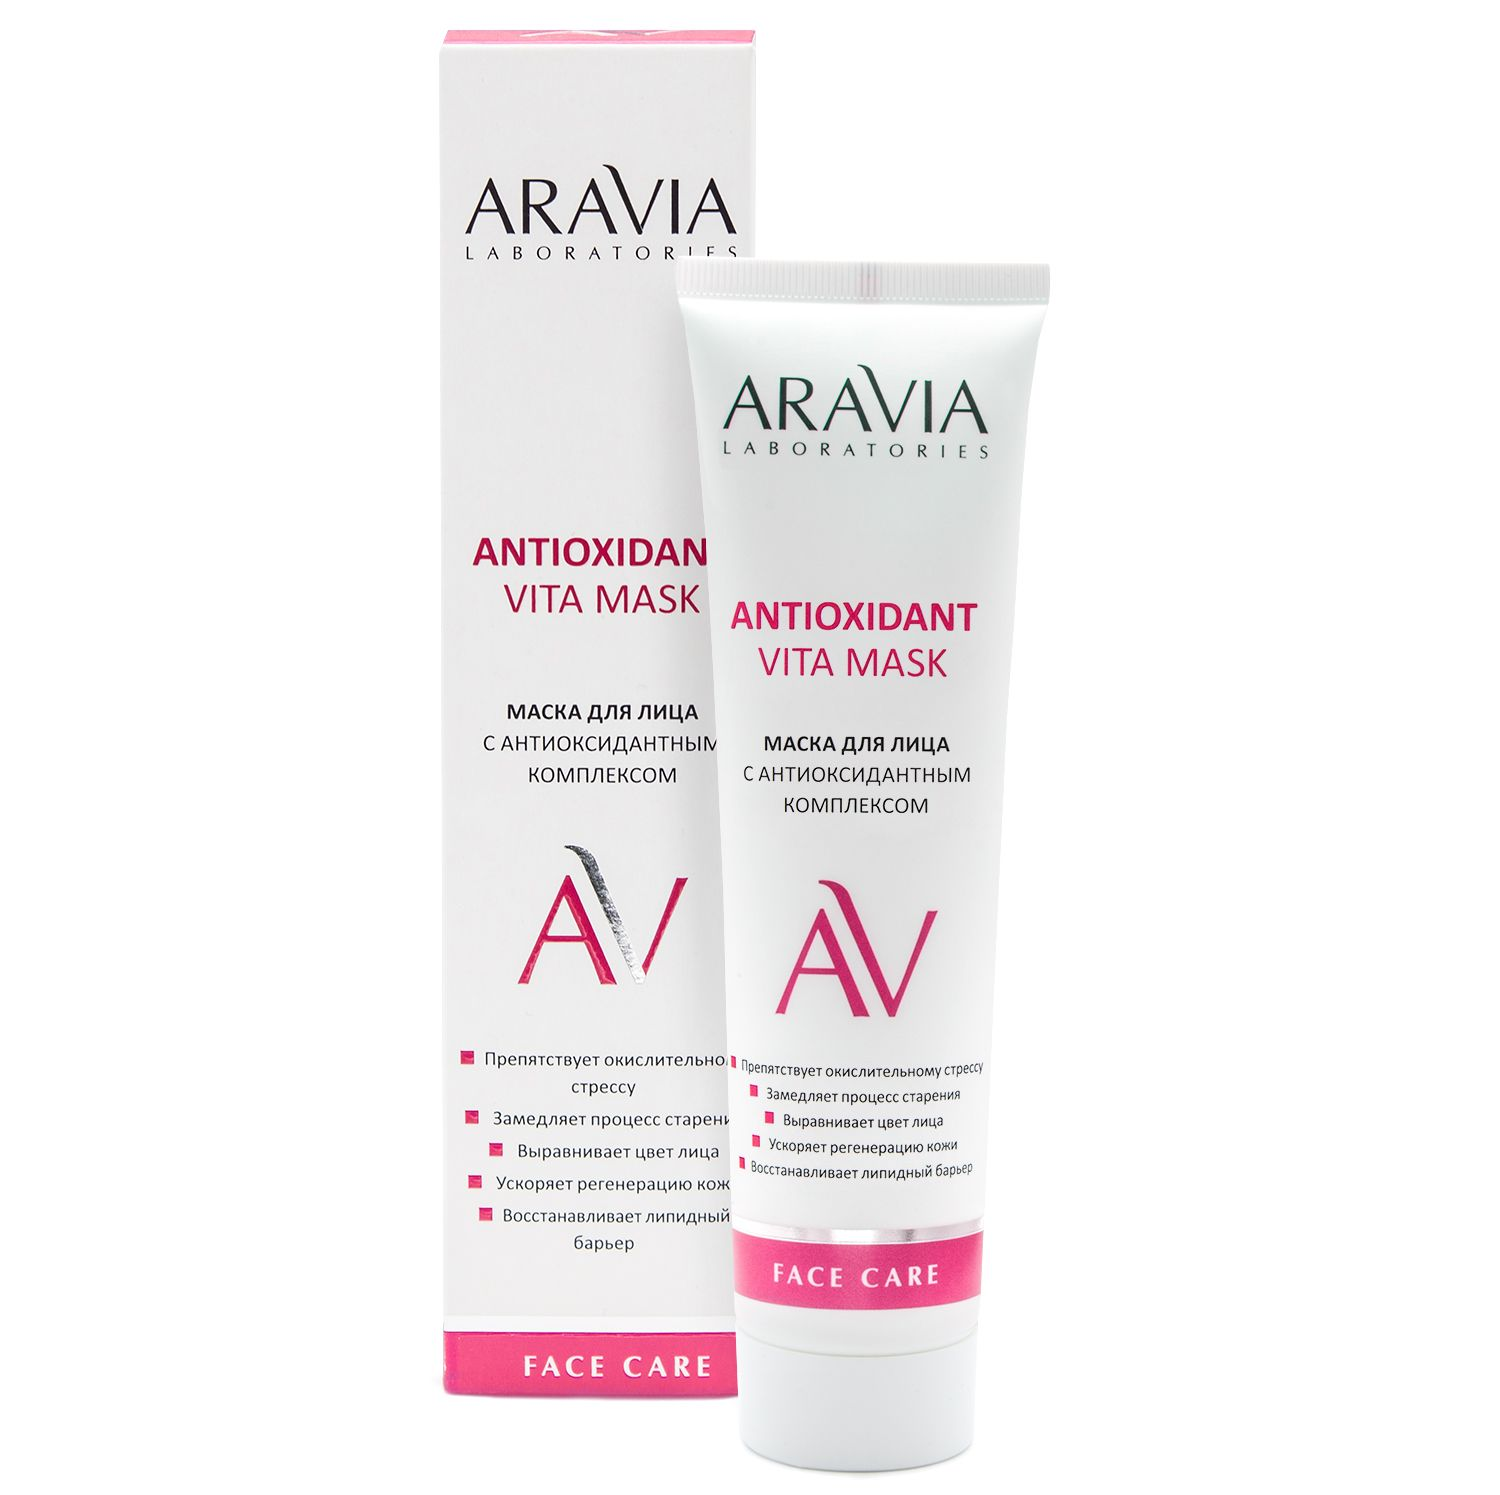 Маска для лица с антиоксидантным комплексом ARAVIA Laboratories Antioxidant Vita Mask